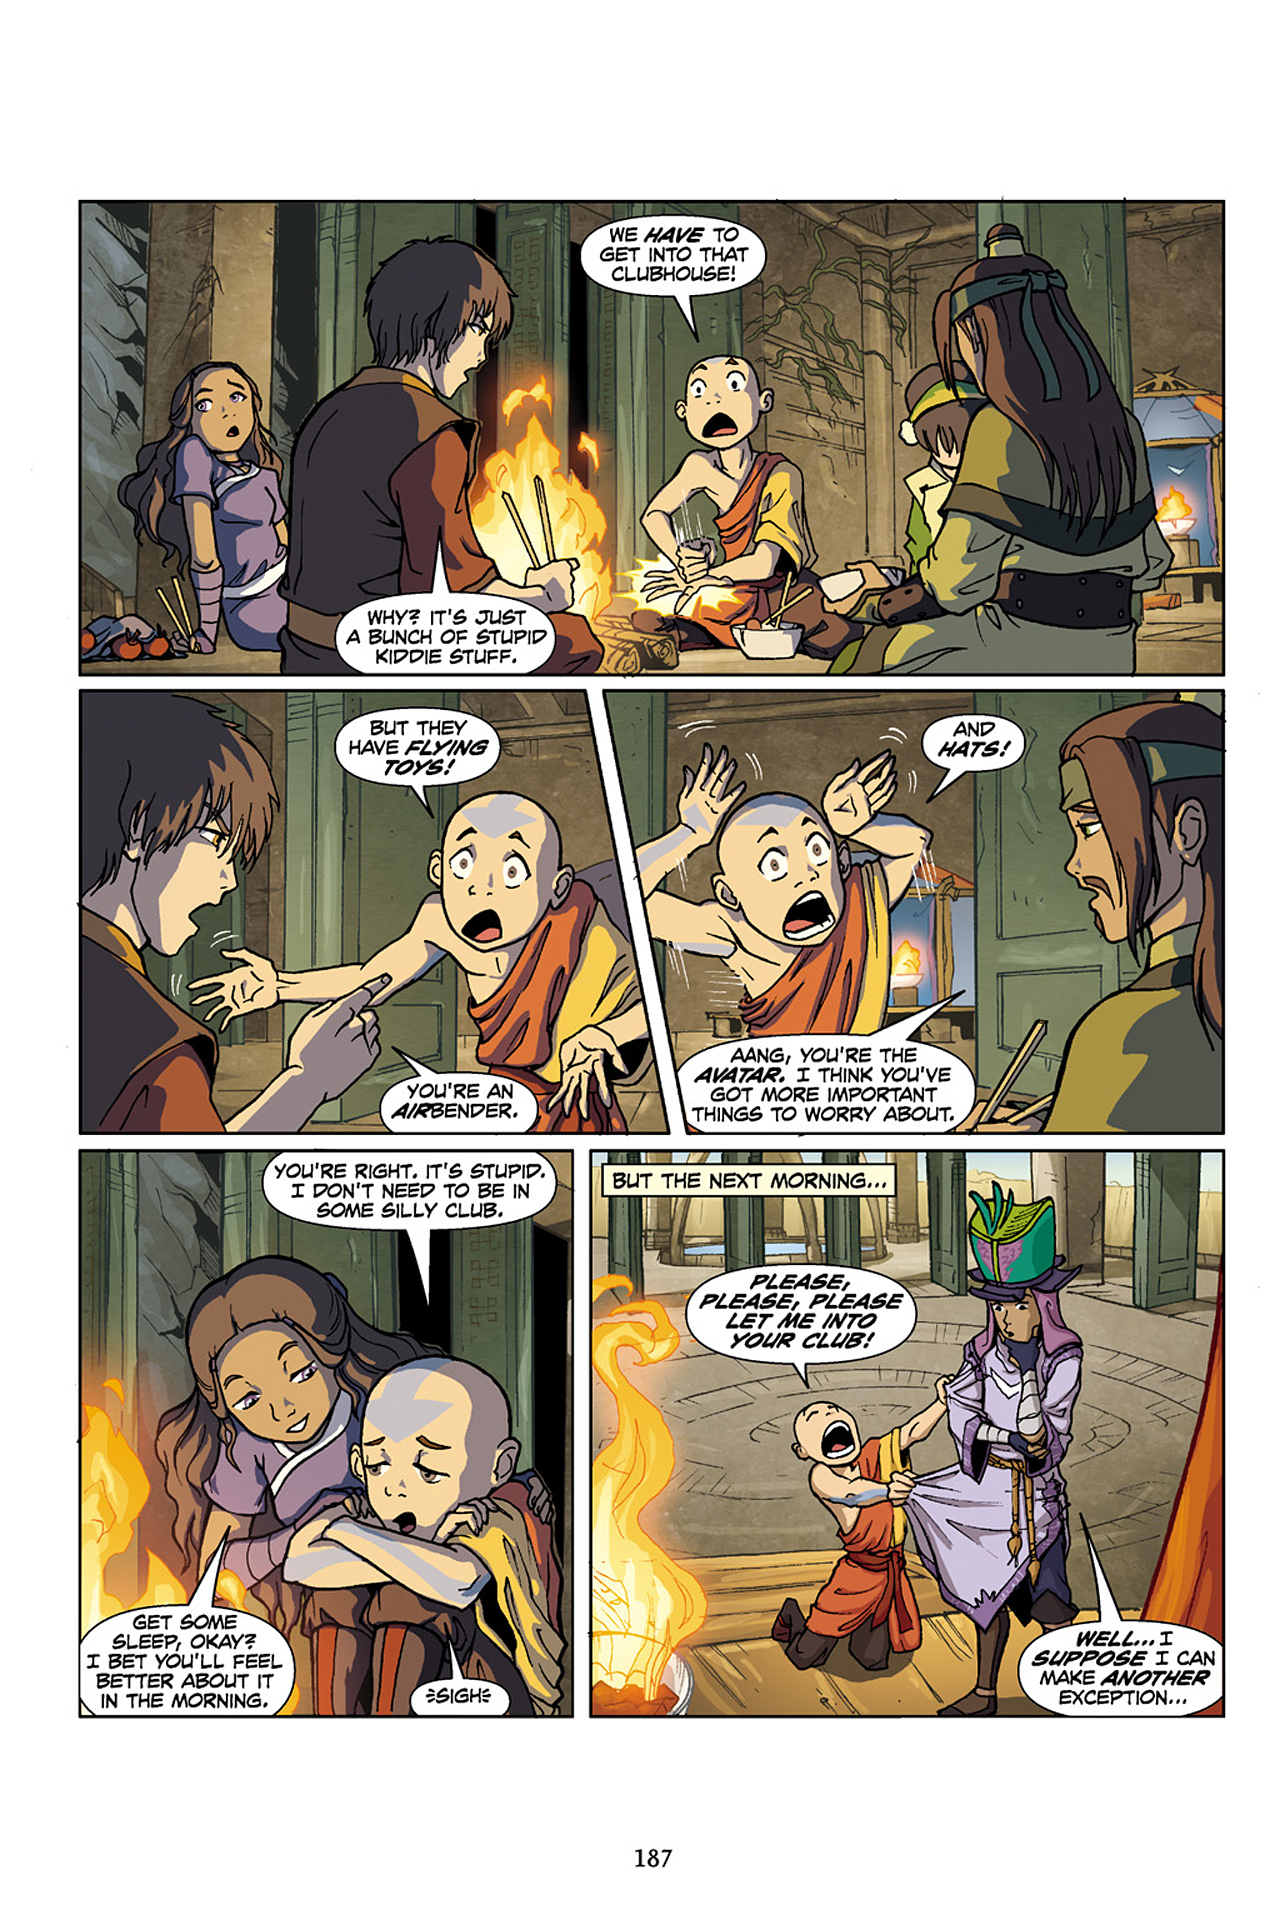 Nickelodeon Avatar: The Last Airbender - The Lost Adventures chap full pic 188